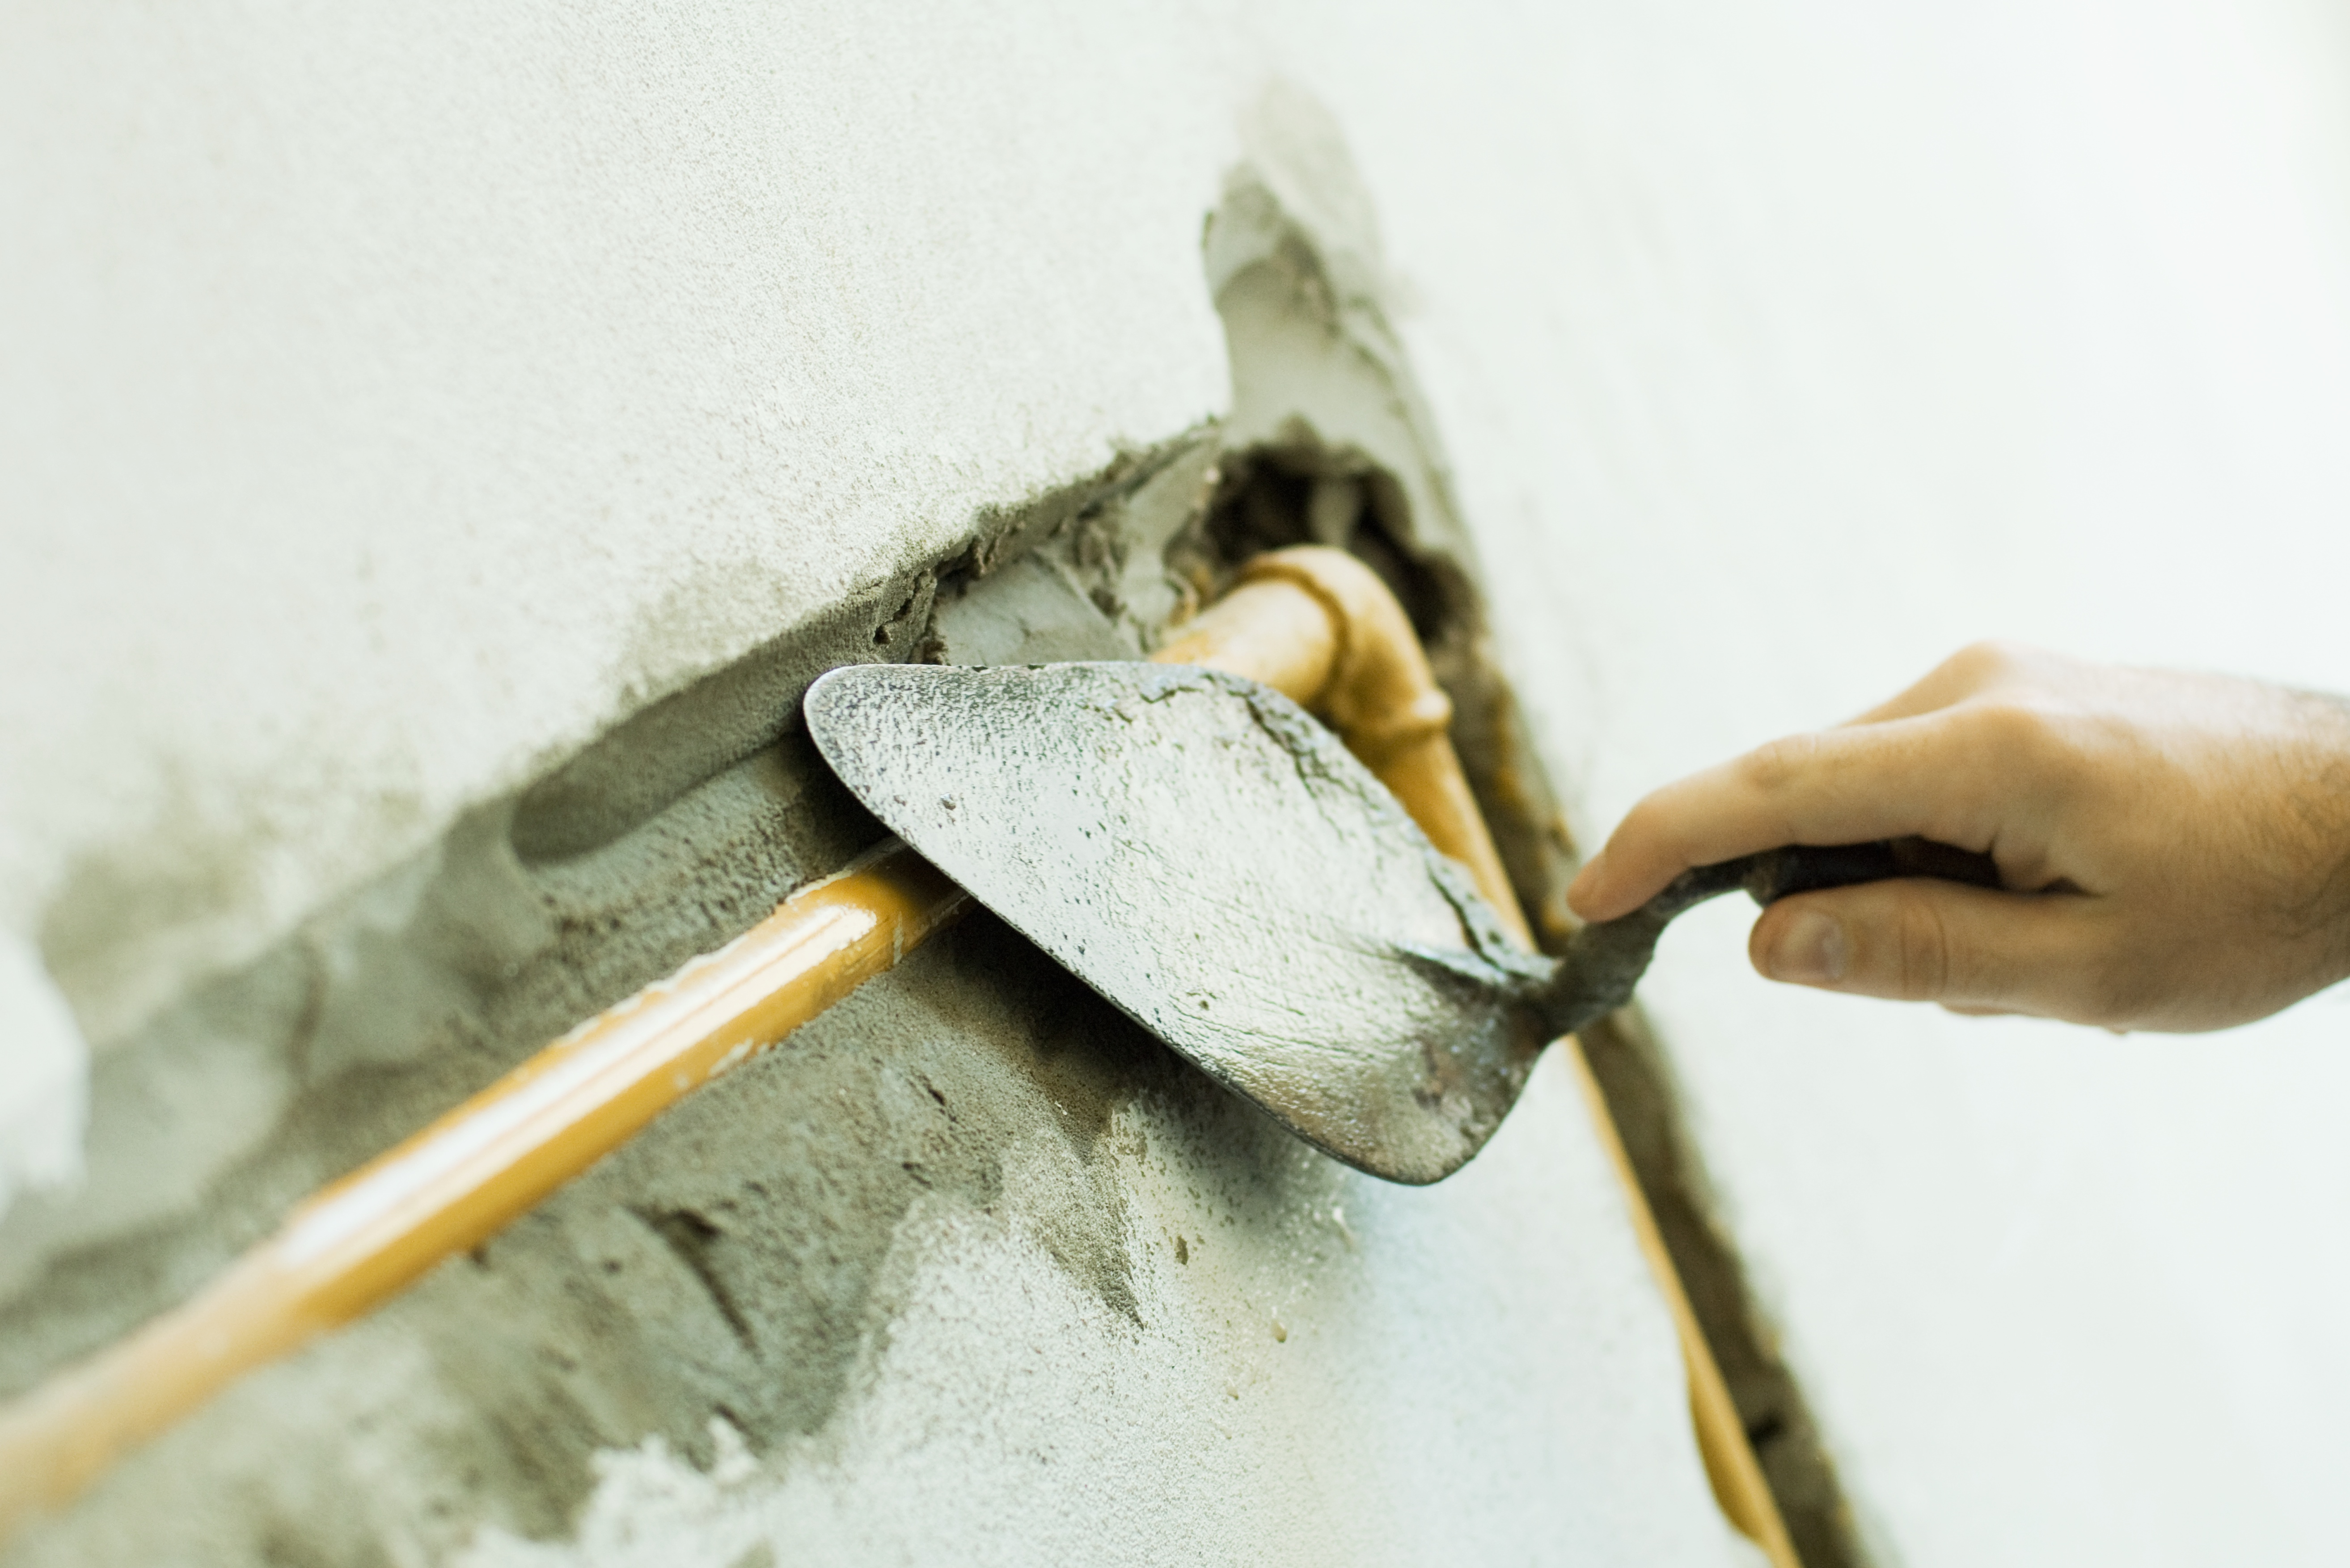 How to Use Plumbers Putty on a Bathroom Sink Drain   Home